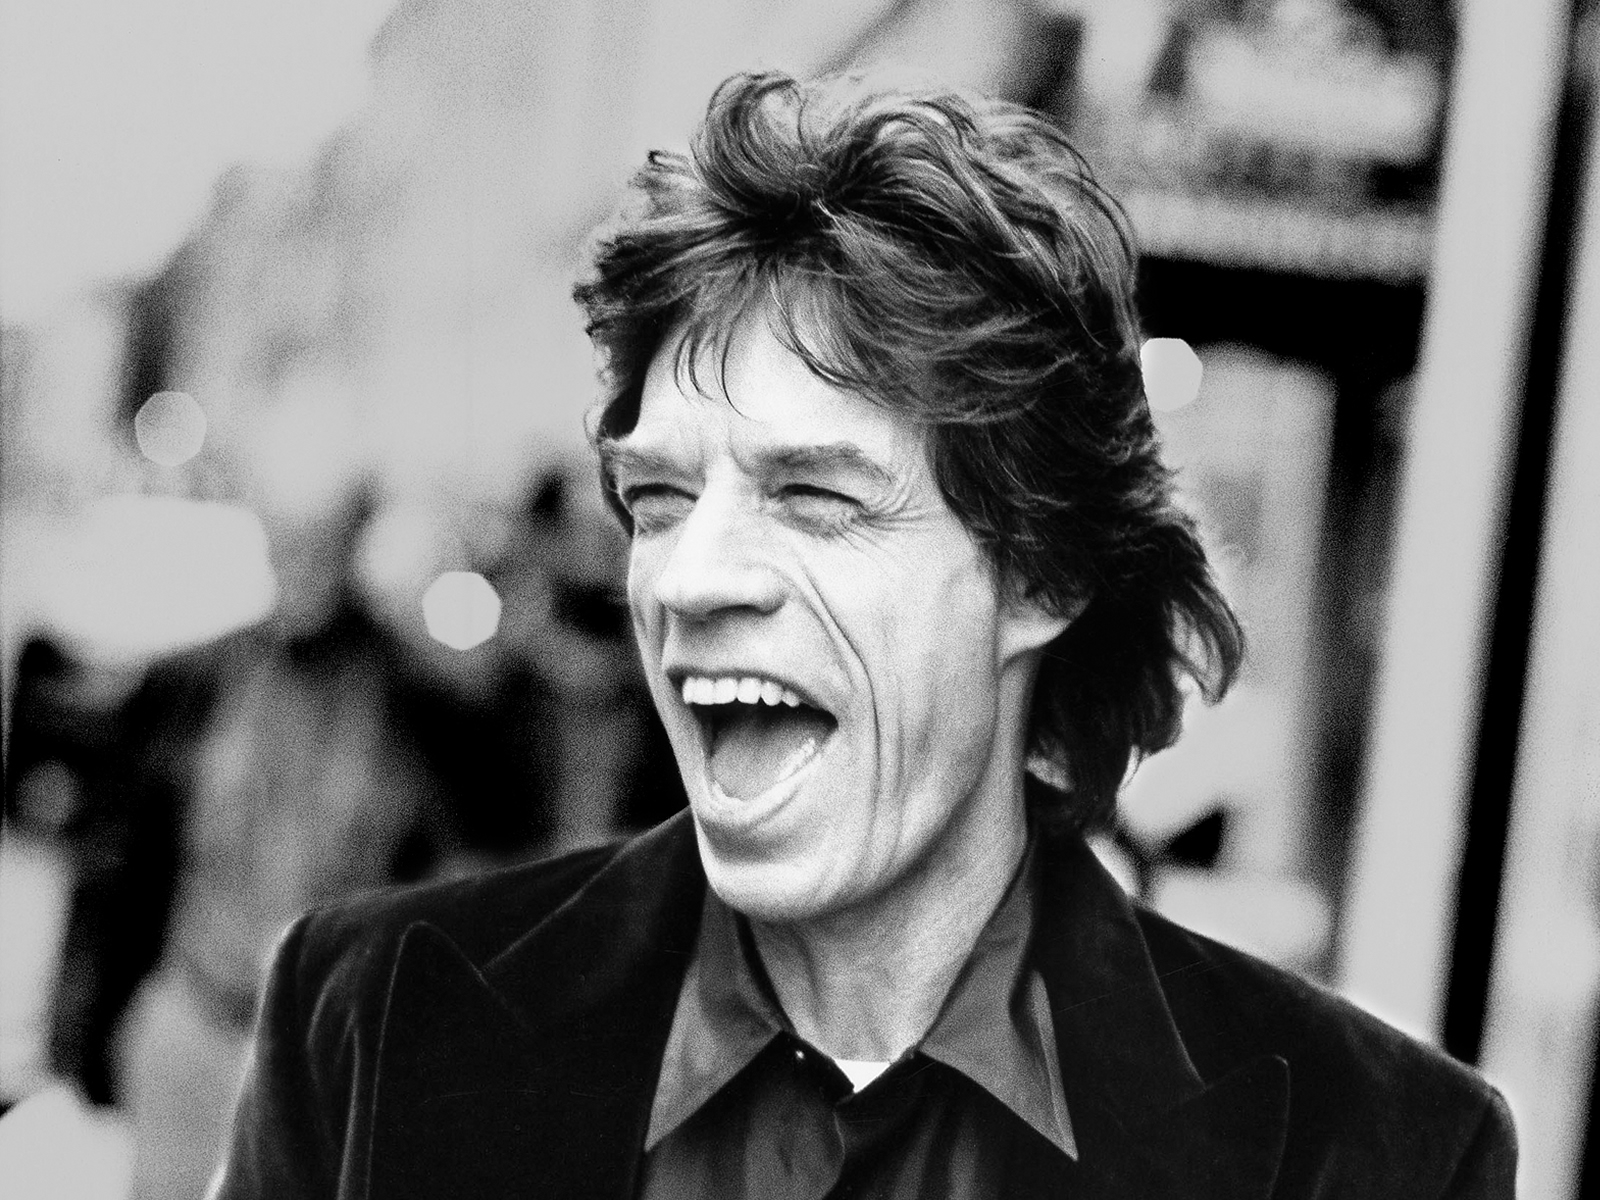 New Music From Mick Jagger!?!?